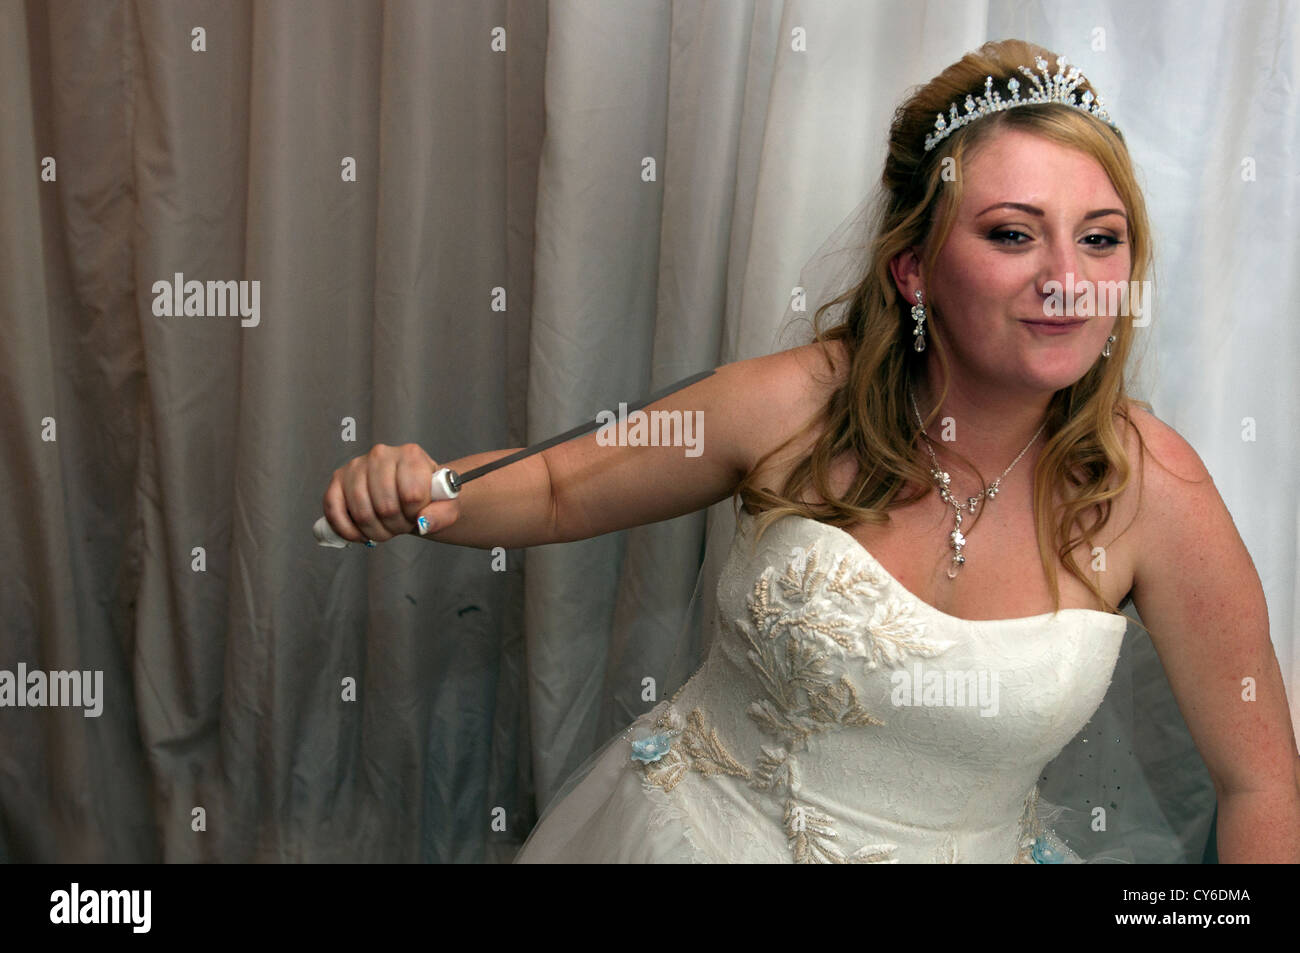 Model Released bride holding a knife (Bridezilla) at the wedding - Stock Image